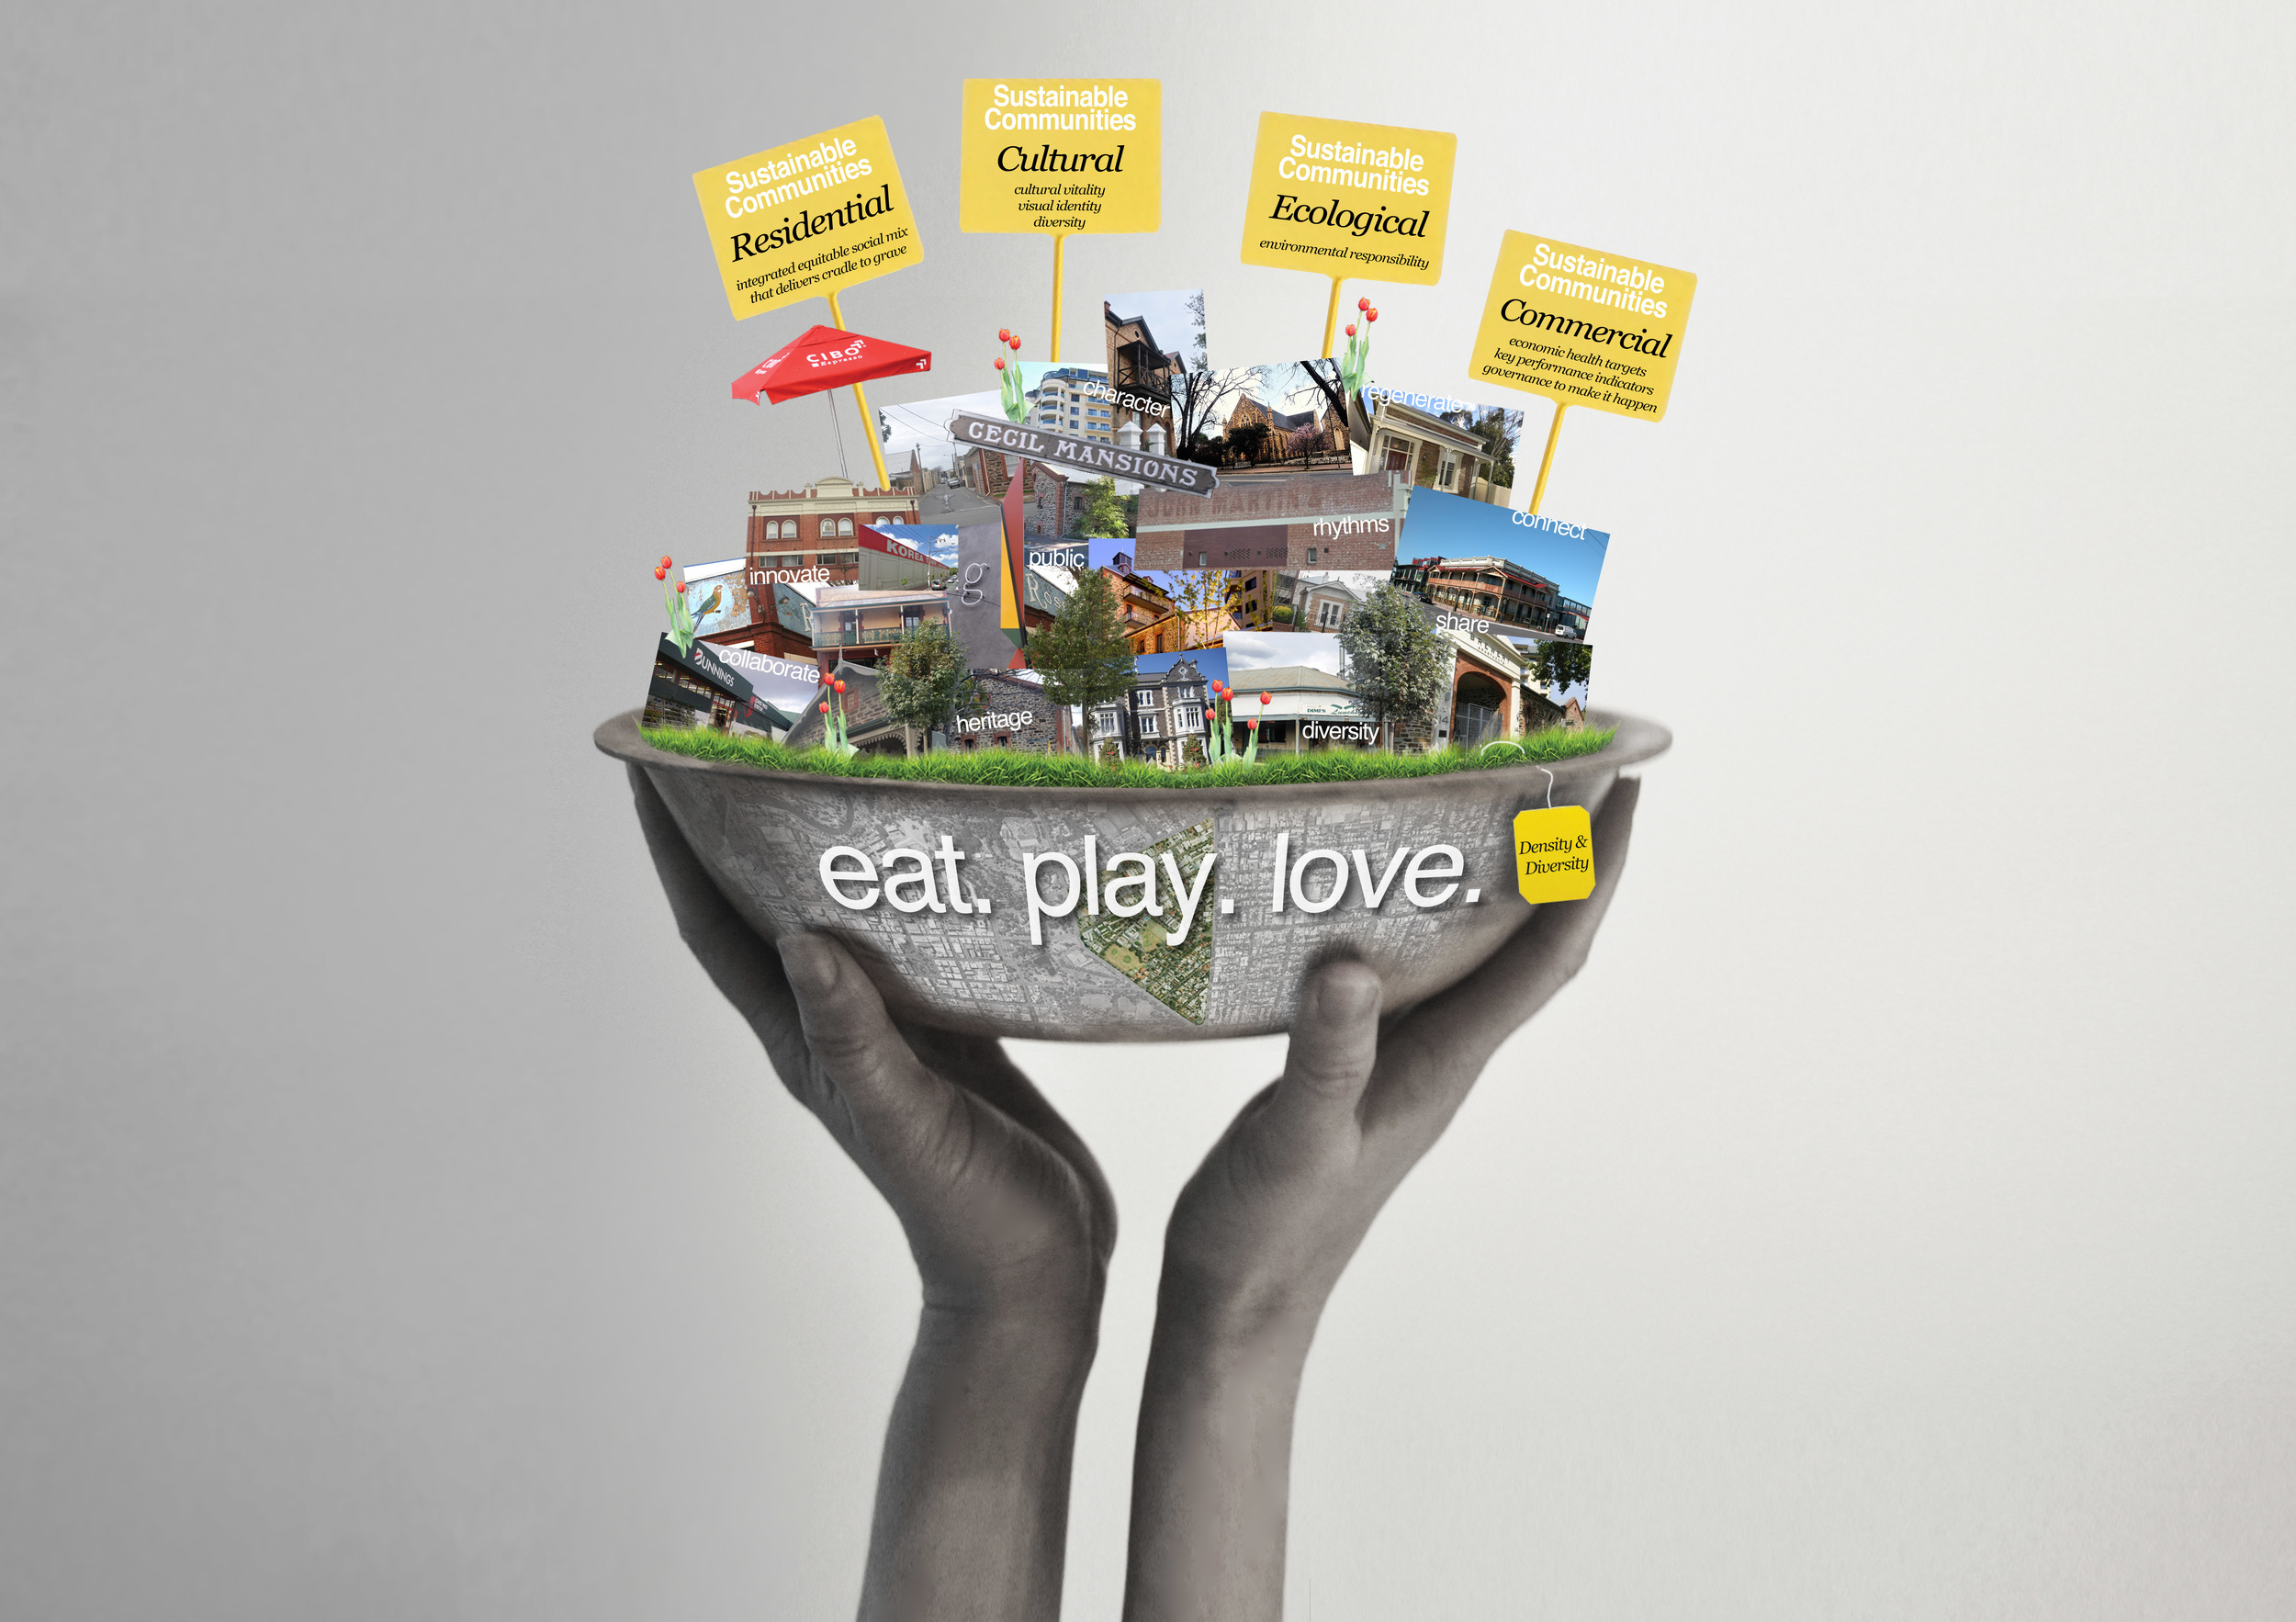 Kent Town: a place to eat, play and love